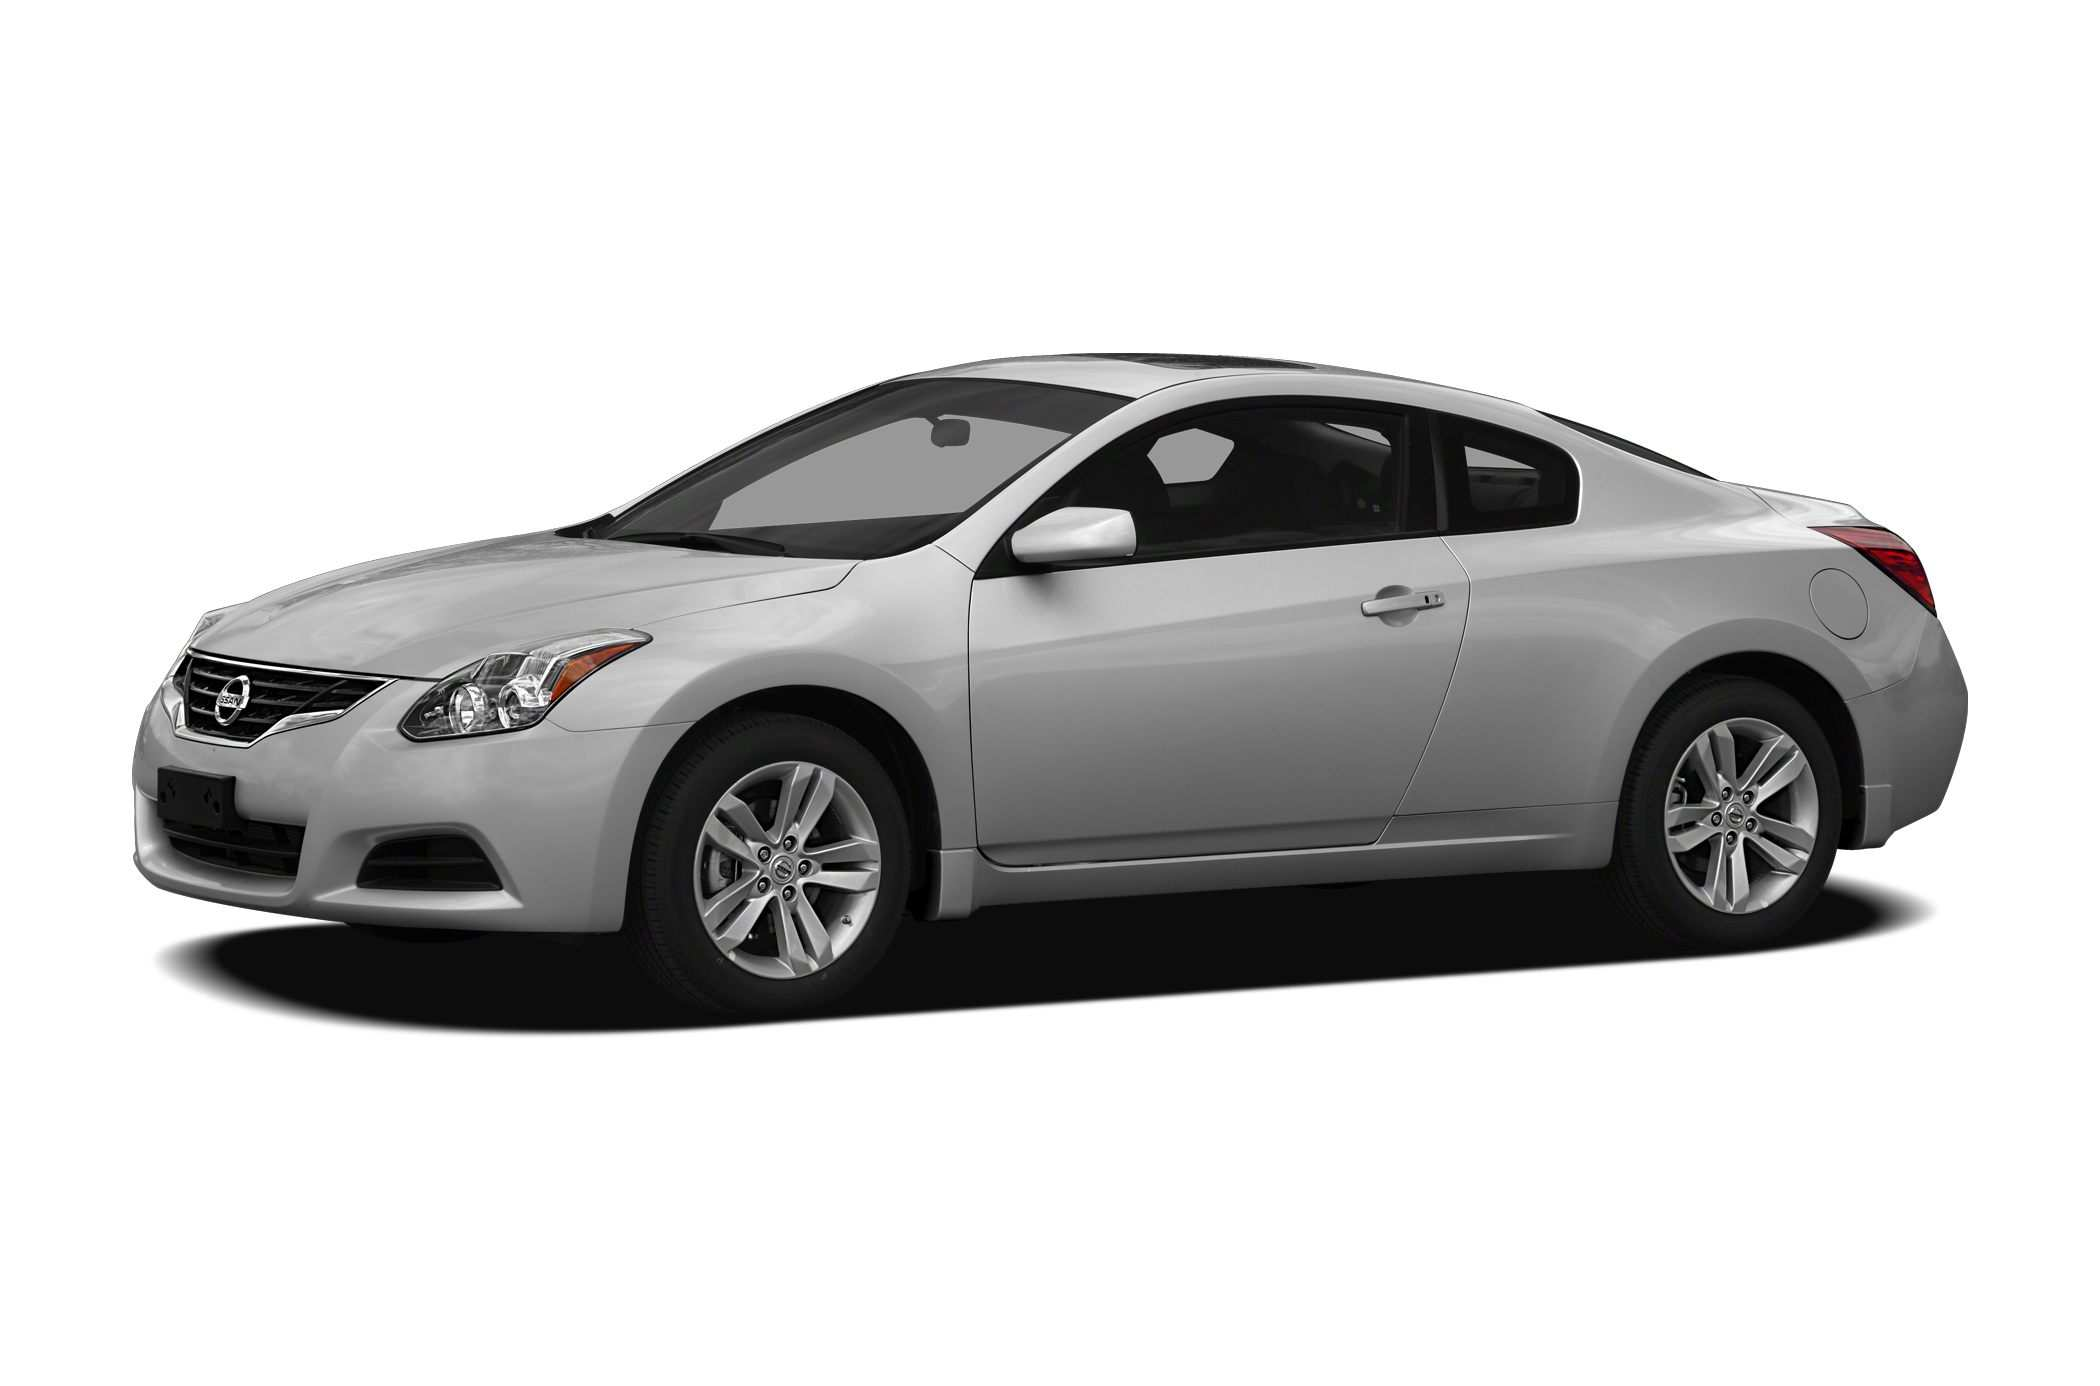 69 New 2012 Nissan Altima Coupe Photos by 2012 Nissan Altima Coupe